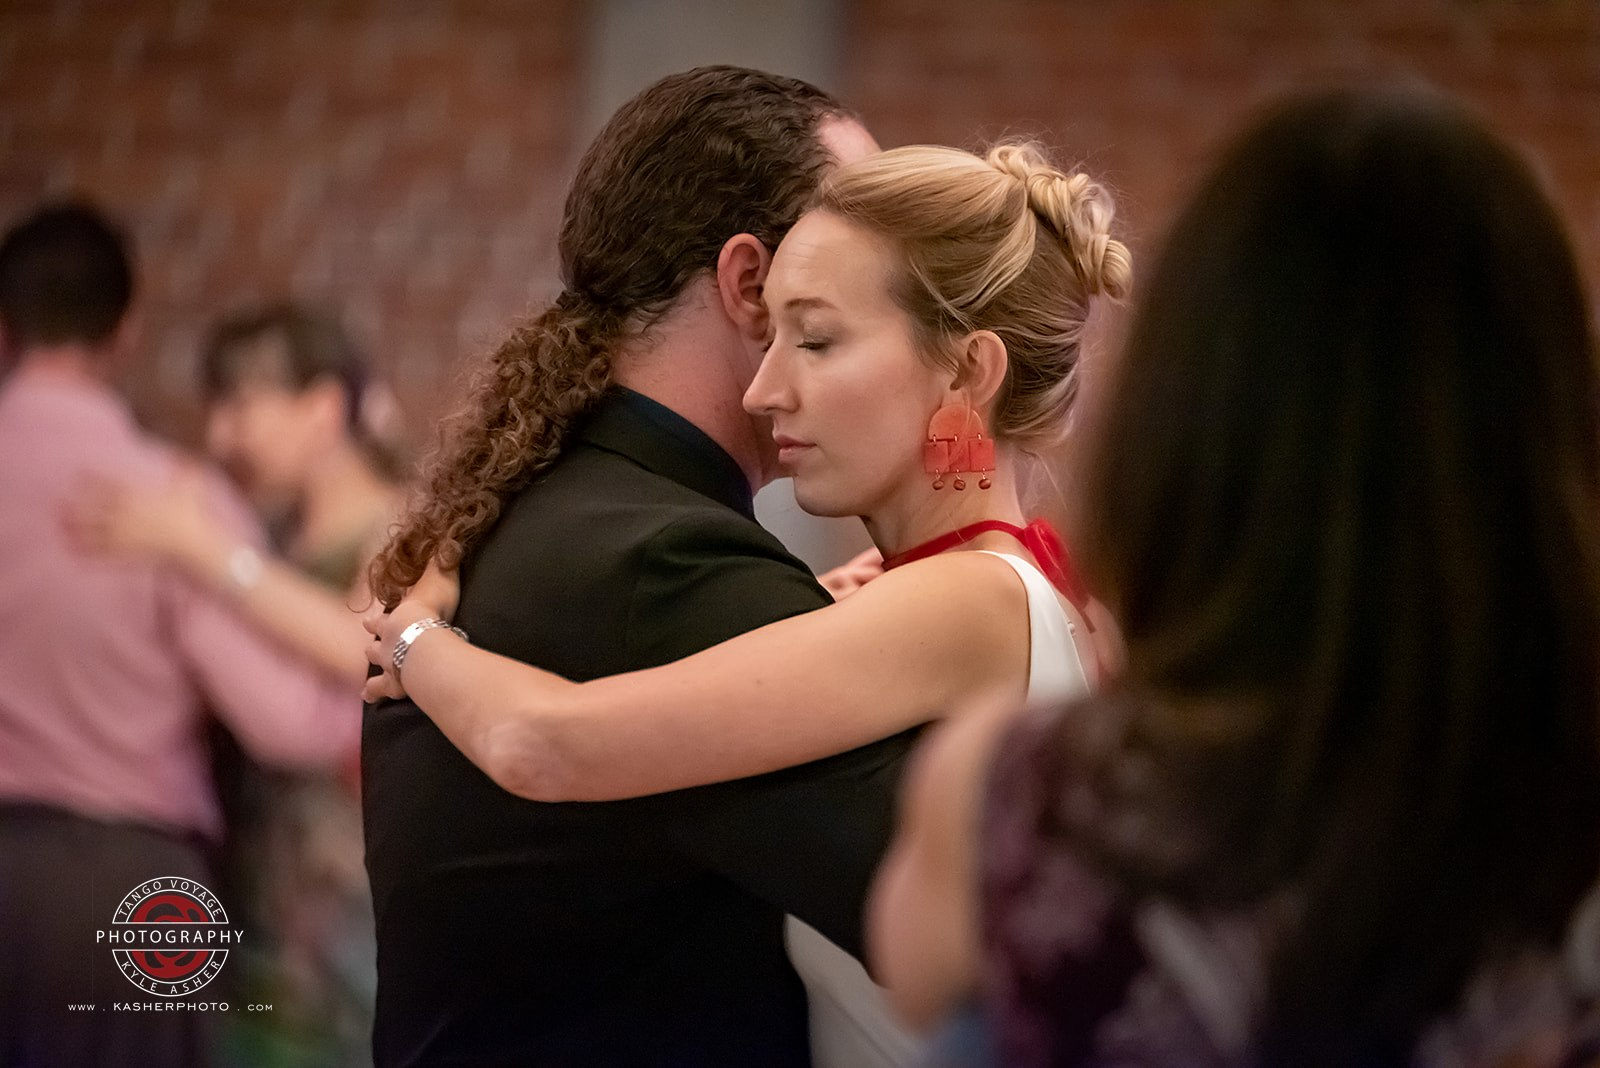 Couple dancing in a Tango Embrace at the San Diego Tango Marathon